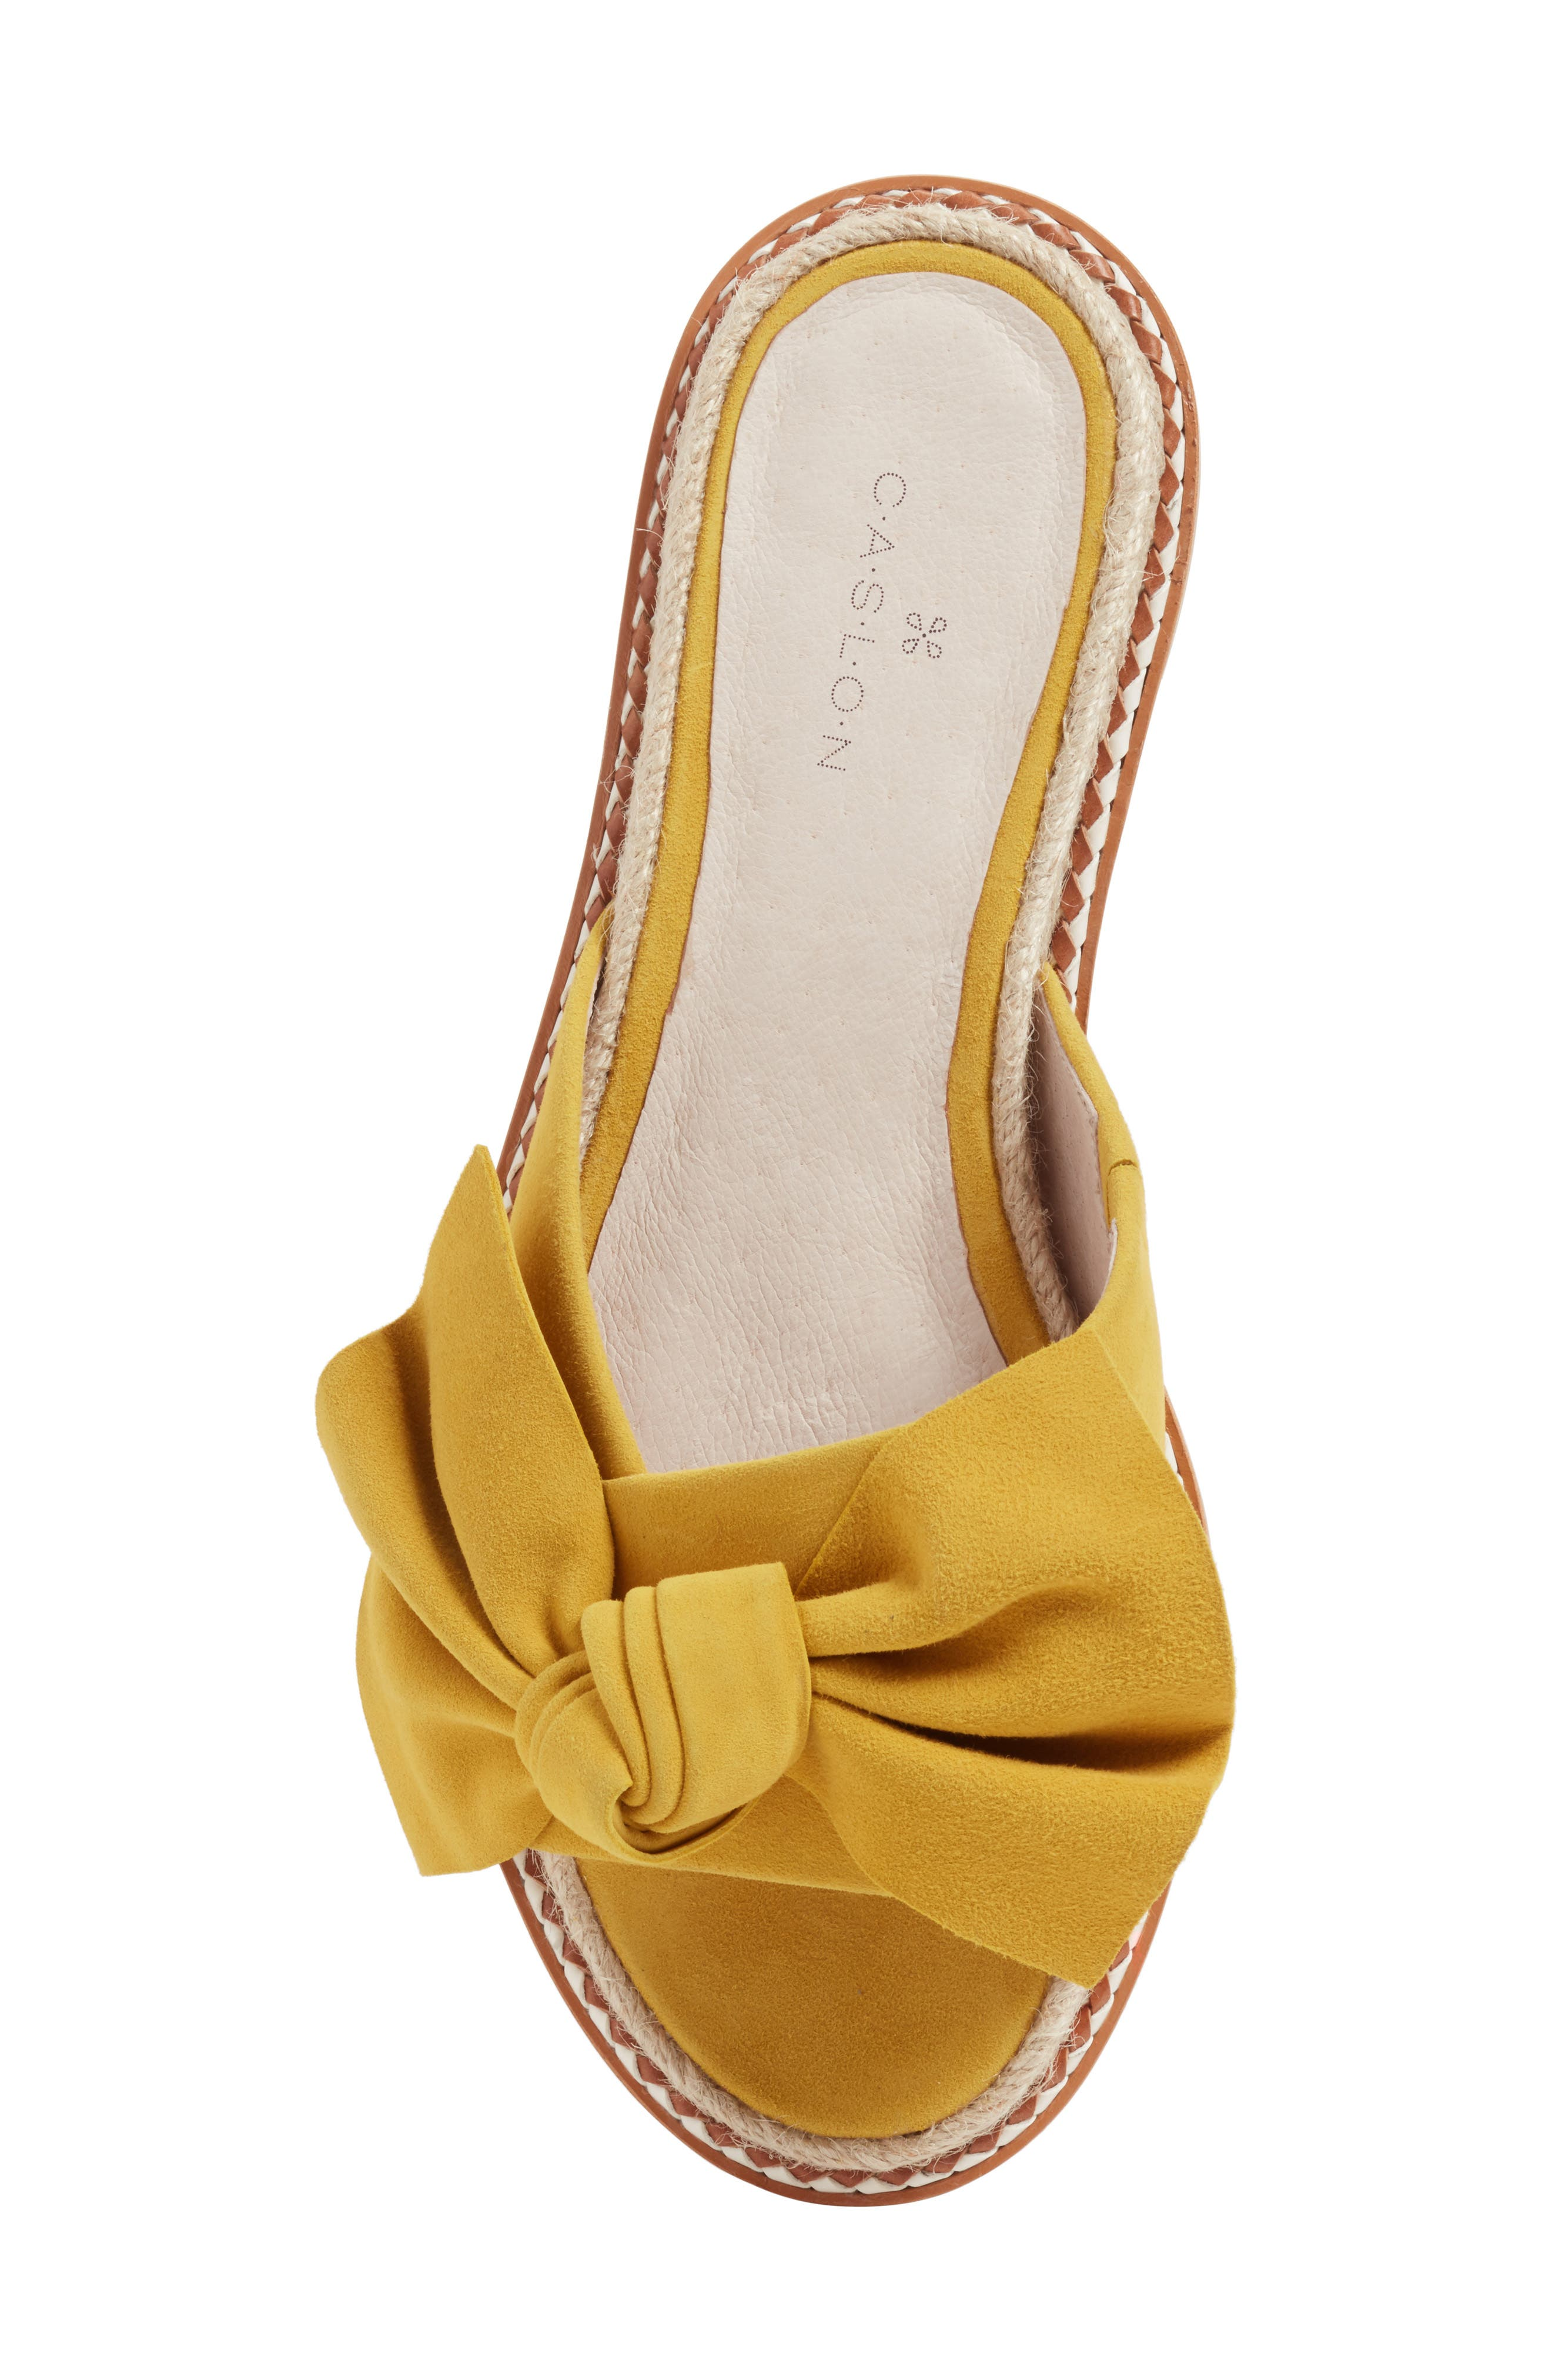 Darcie Slide Sandal,                             Alternate thumbnail 5, color,                             Mustard Suede